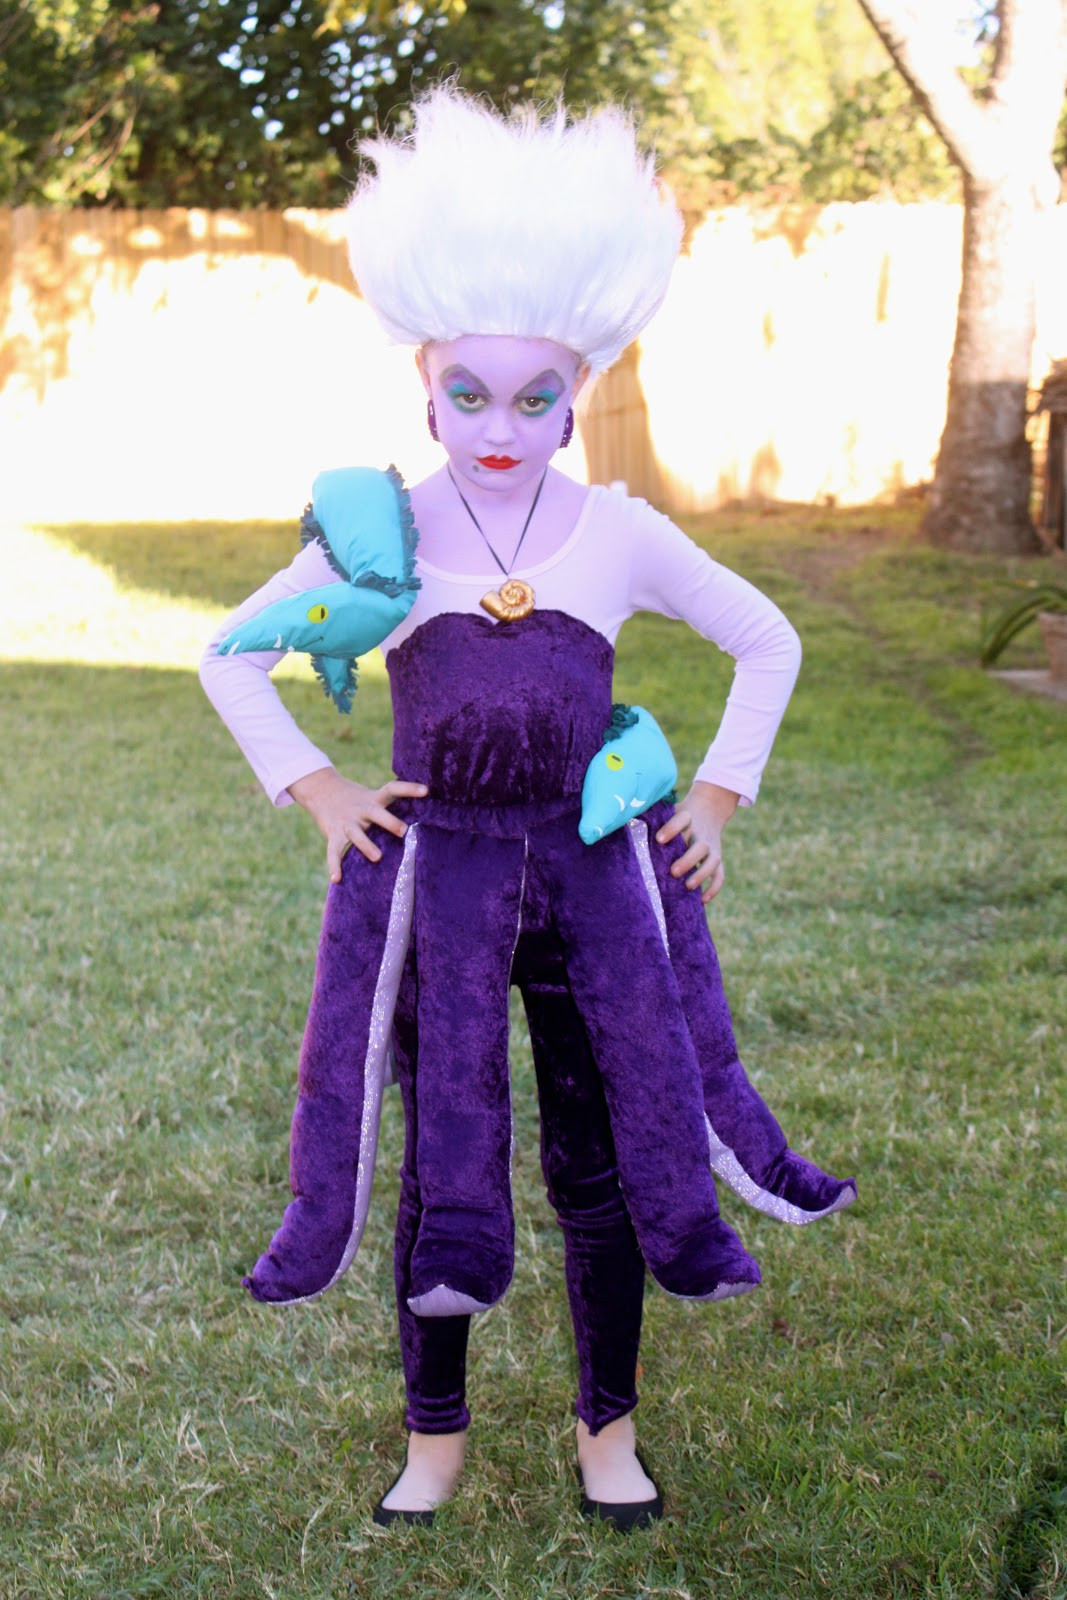 Best ideas about DIY Witch Costume For Kids . Save or Pin sweet savannah Ursula The Sea Witch & Wayne Campbell Now.